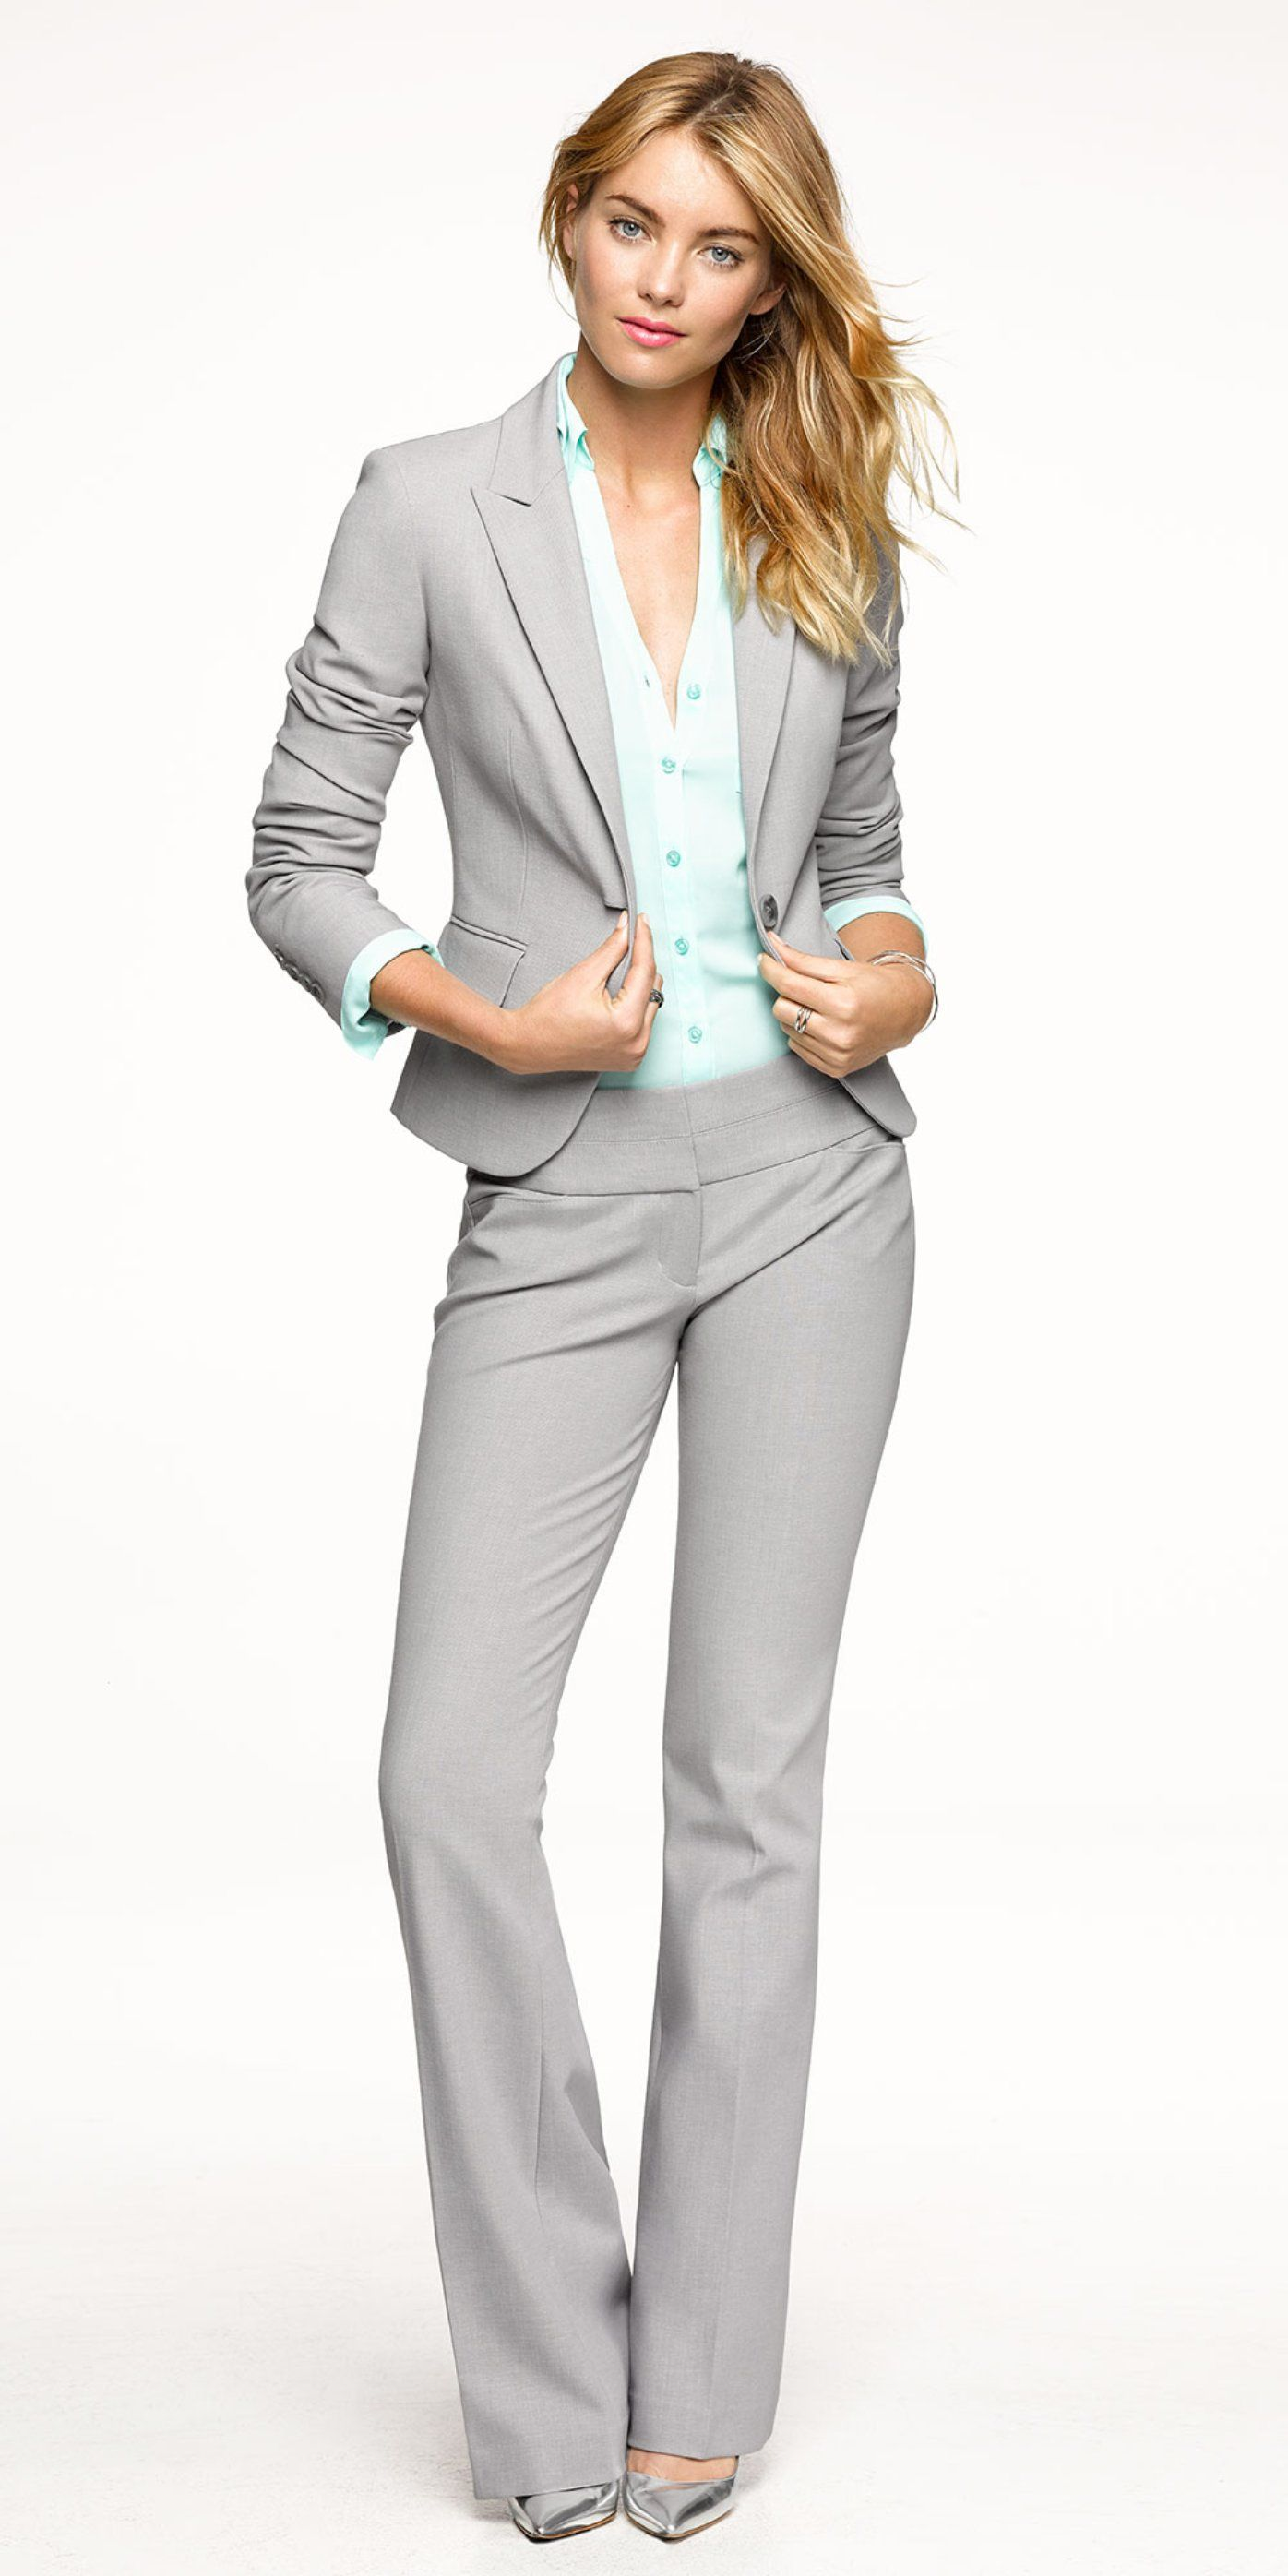 Coral Suit - Cute Business suit! | My Style | Pinterest | Coral ...